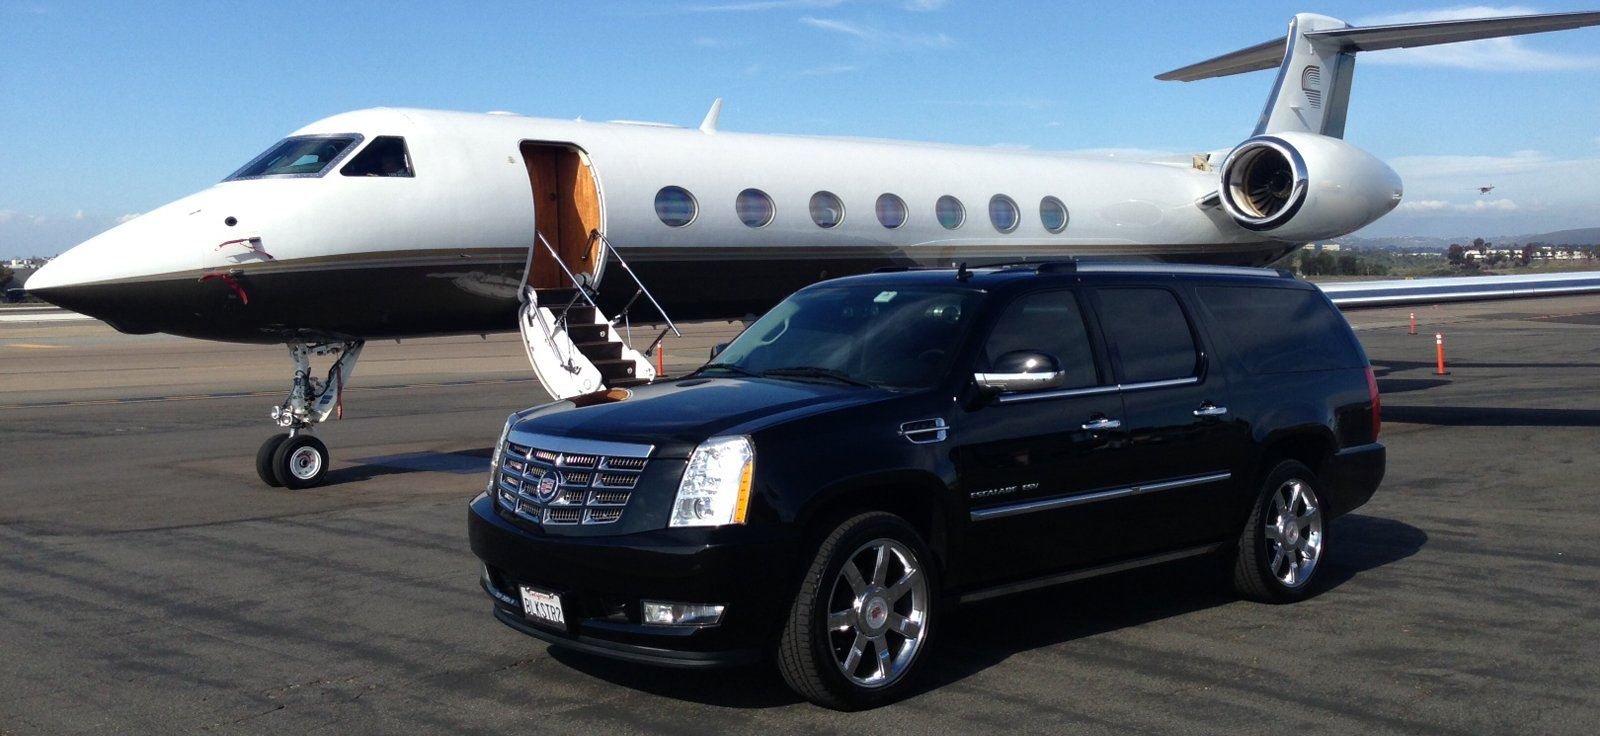 Transportation Services - Limo Network Nationwide